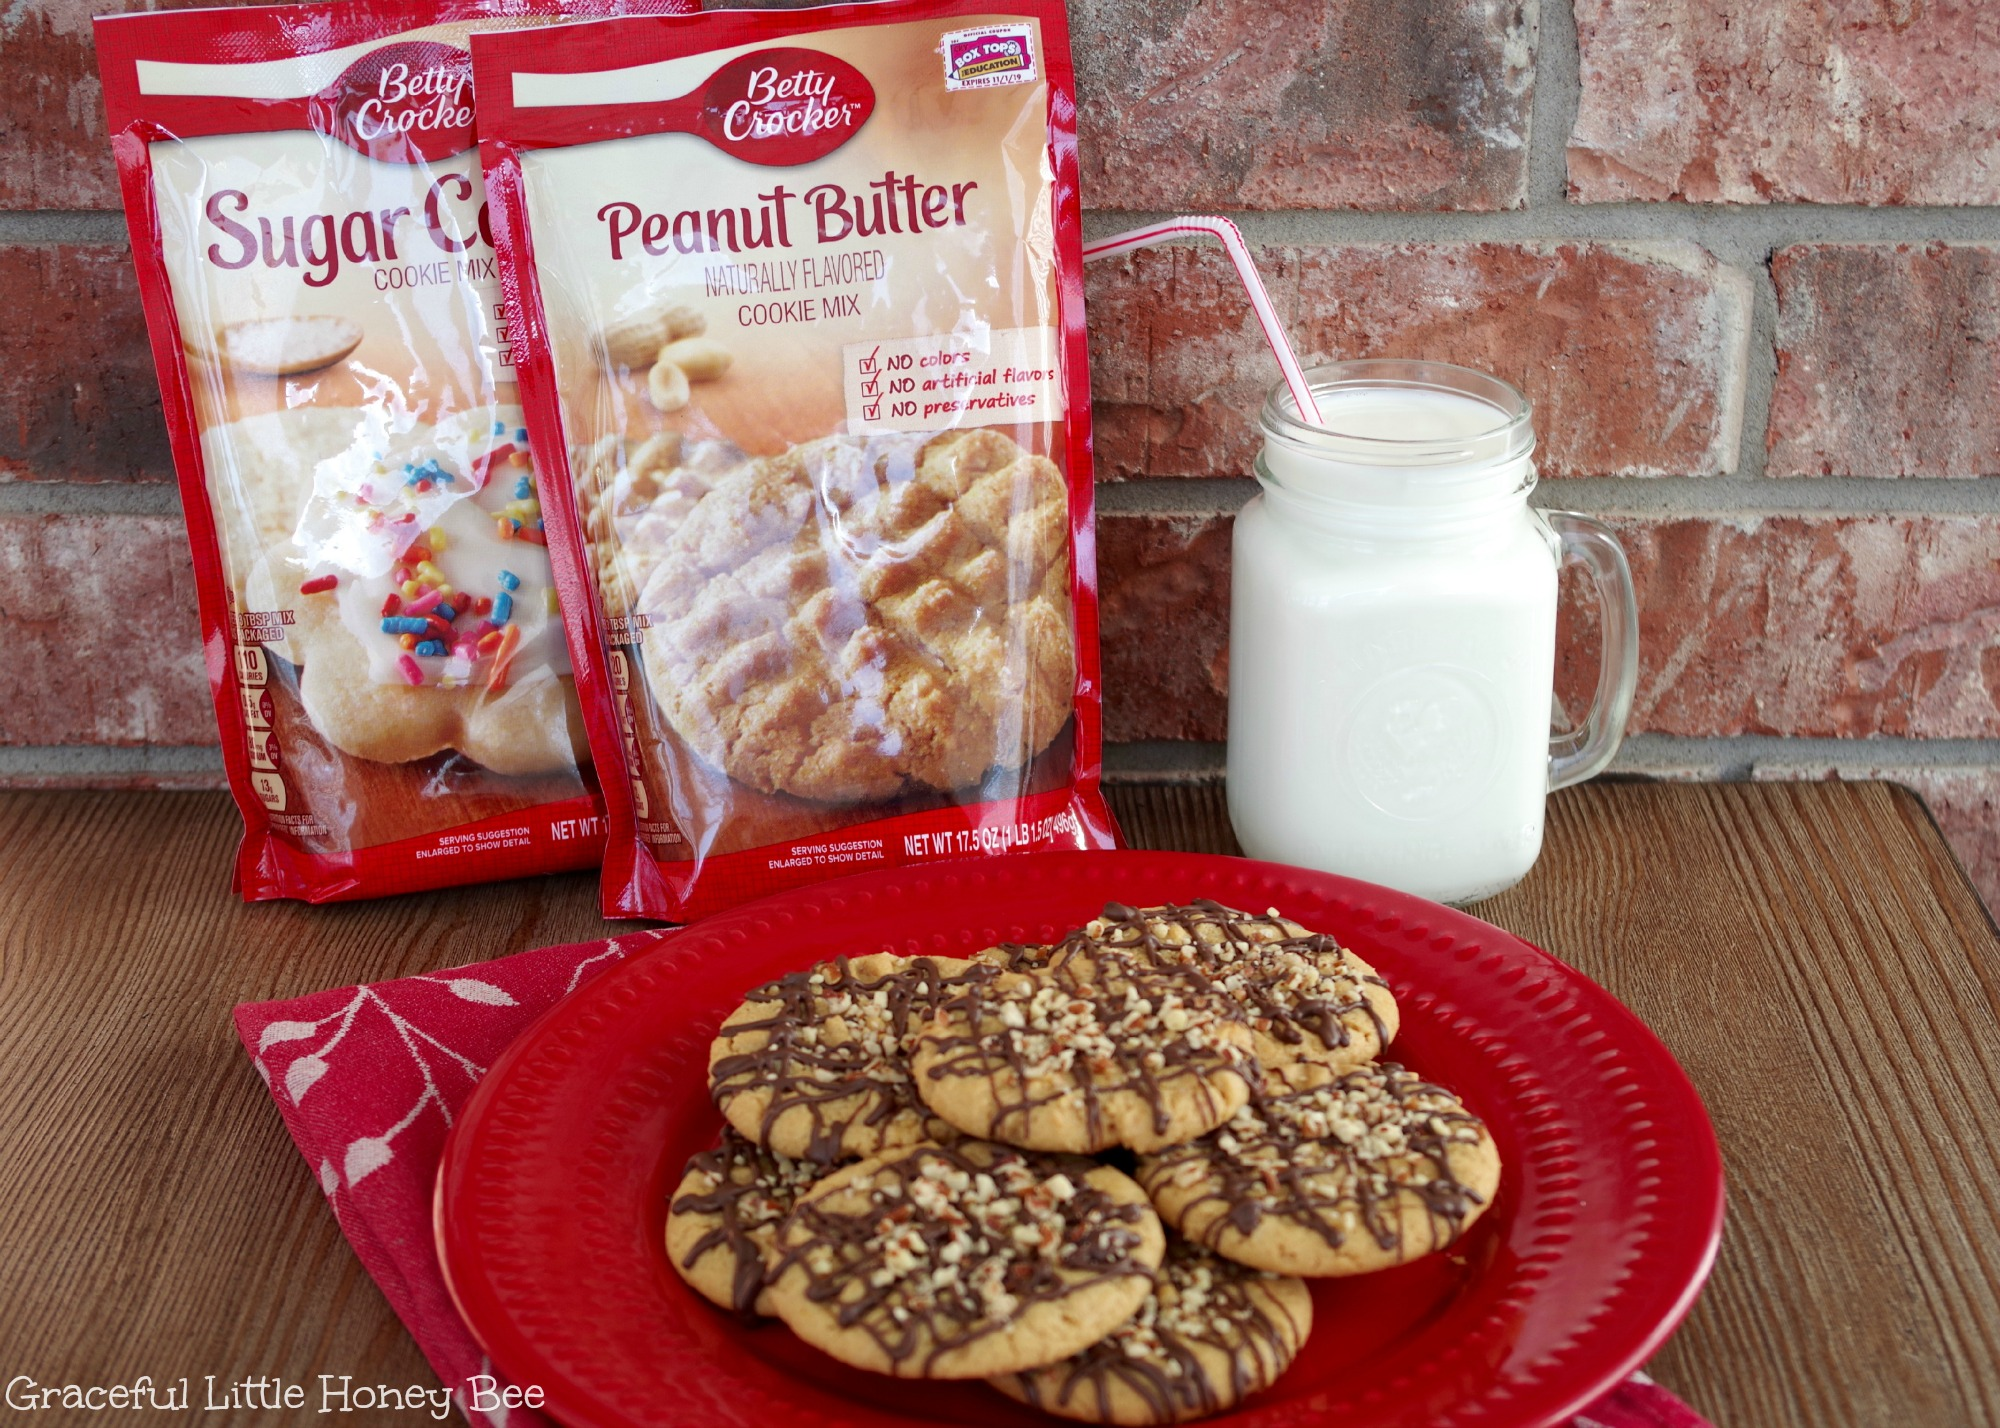 betty crocker 2 whats your favorite christmas cookie tradition or recipe - Betty Crocker Christmas Cookie Recipes